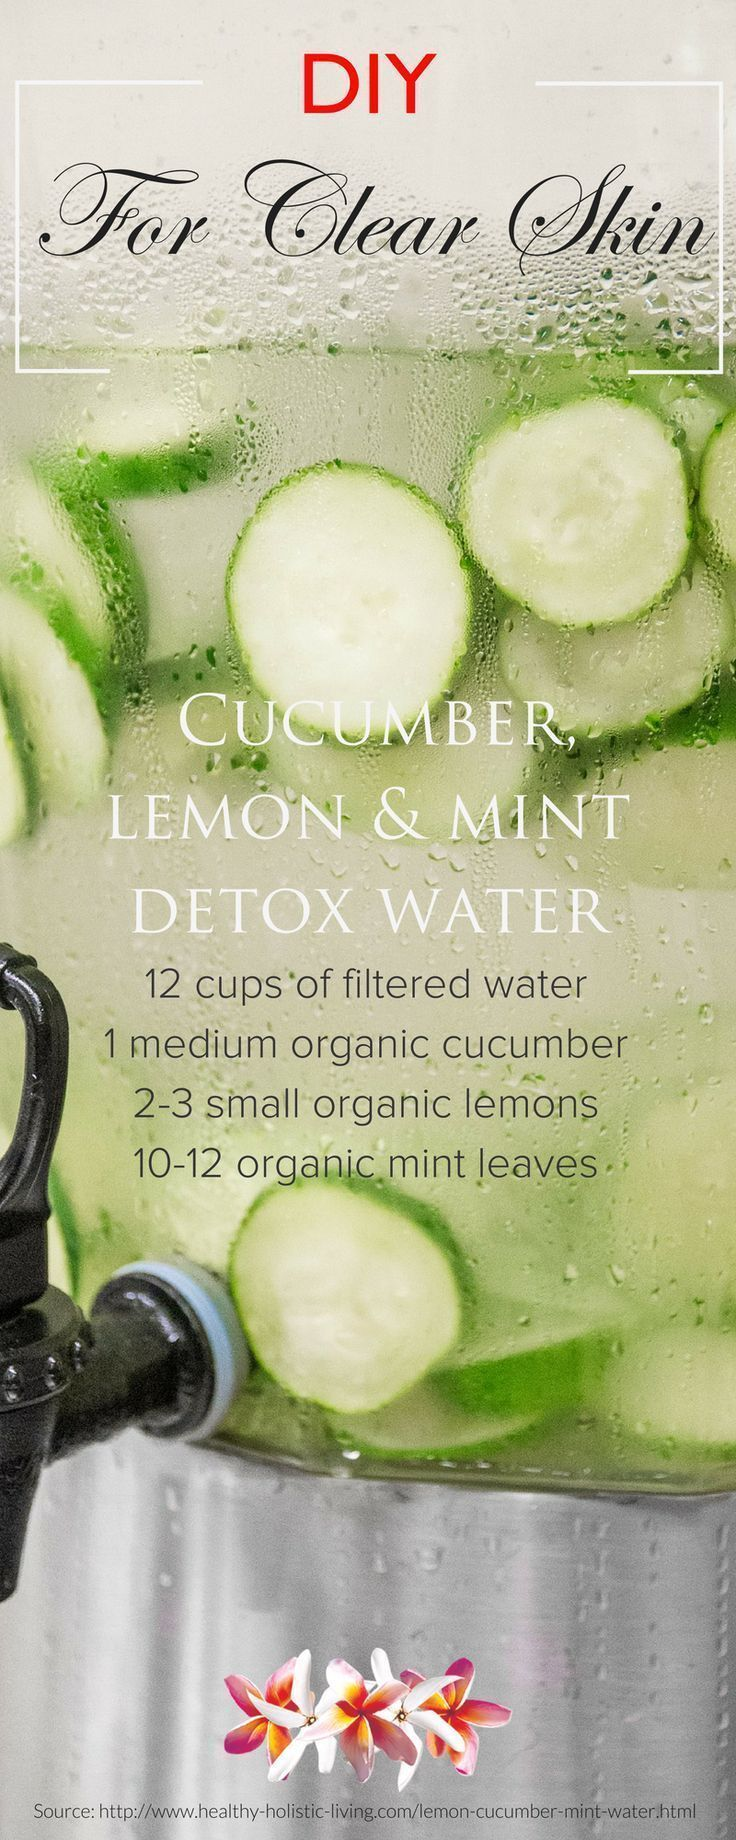 5 detox water recipes for maintaining a healthy clear skin!